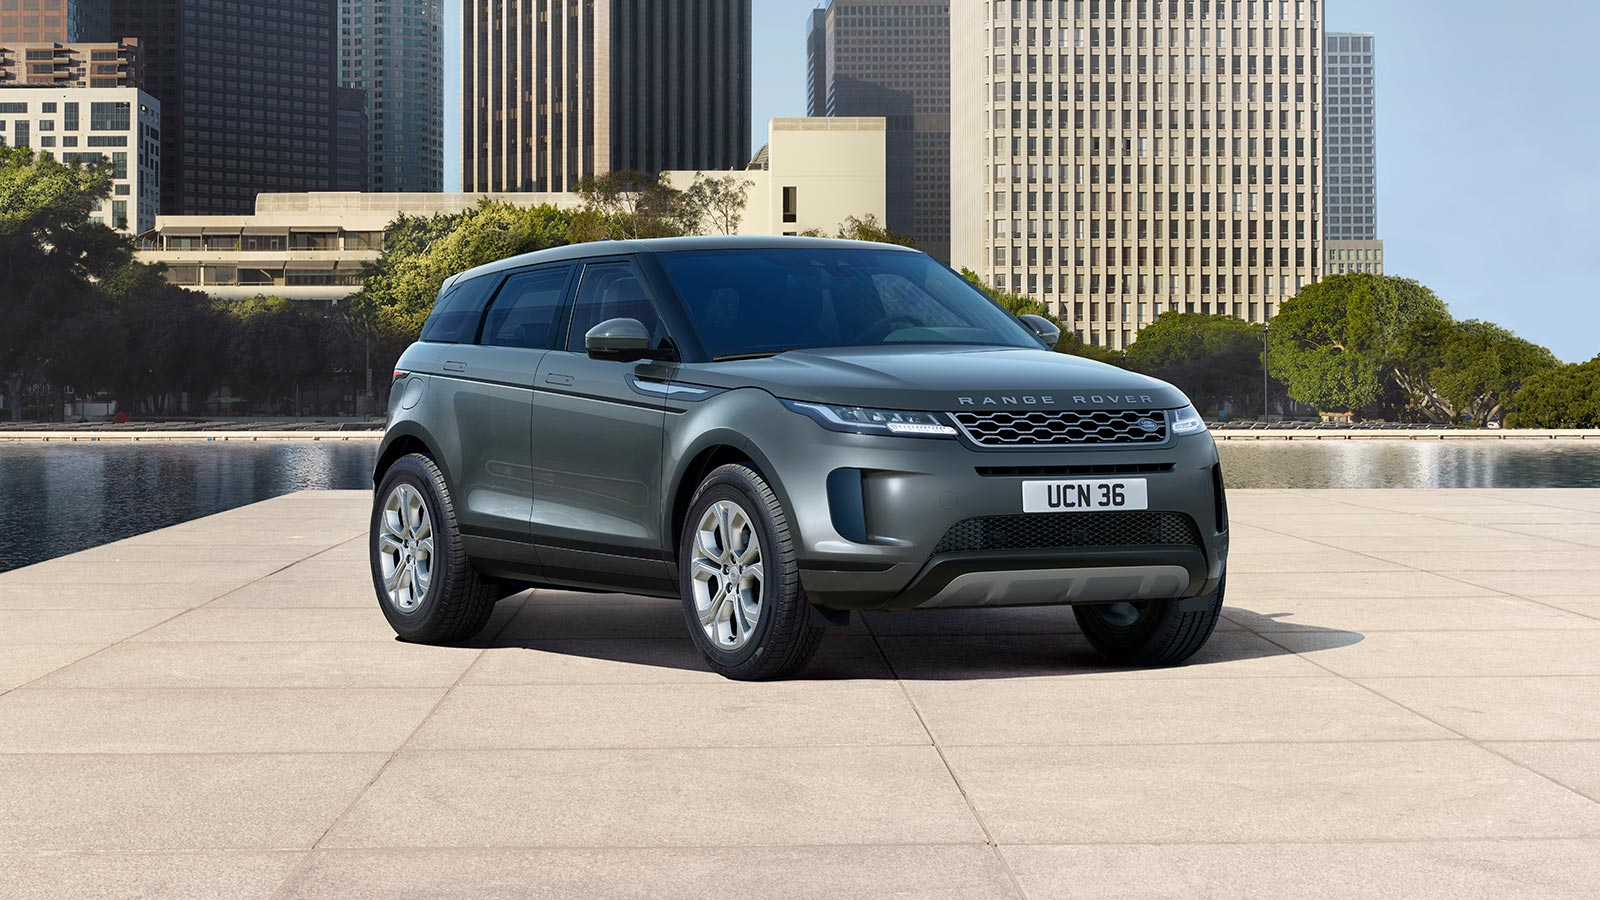 THE NEW RANGE ROVER EVOQUE S